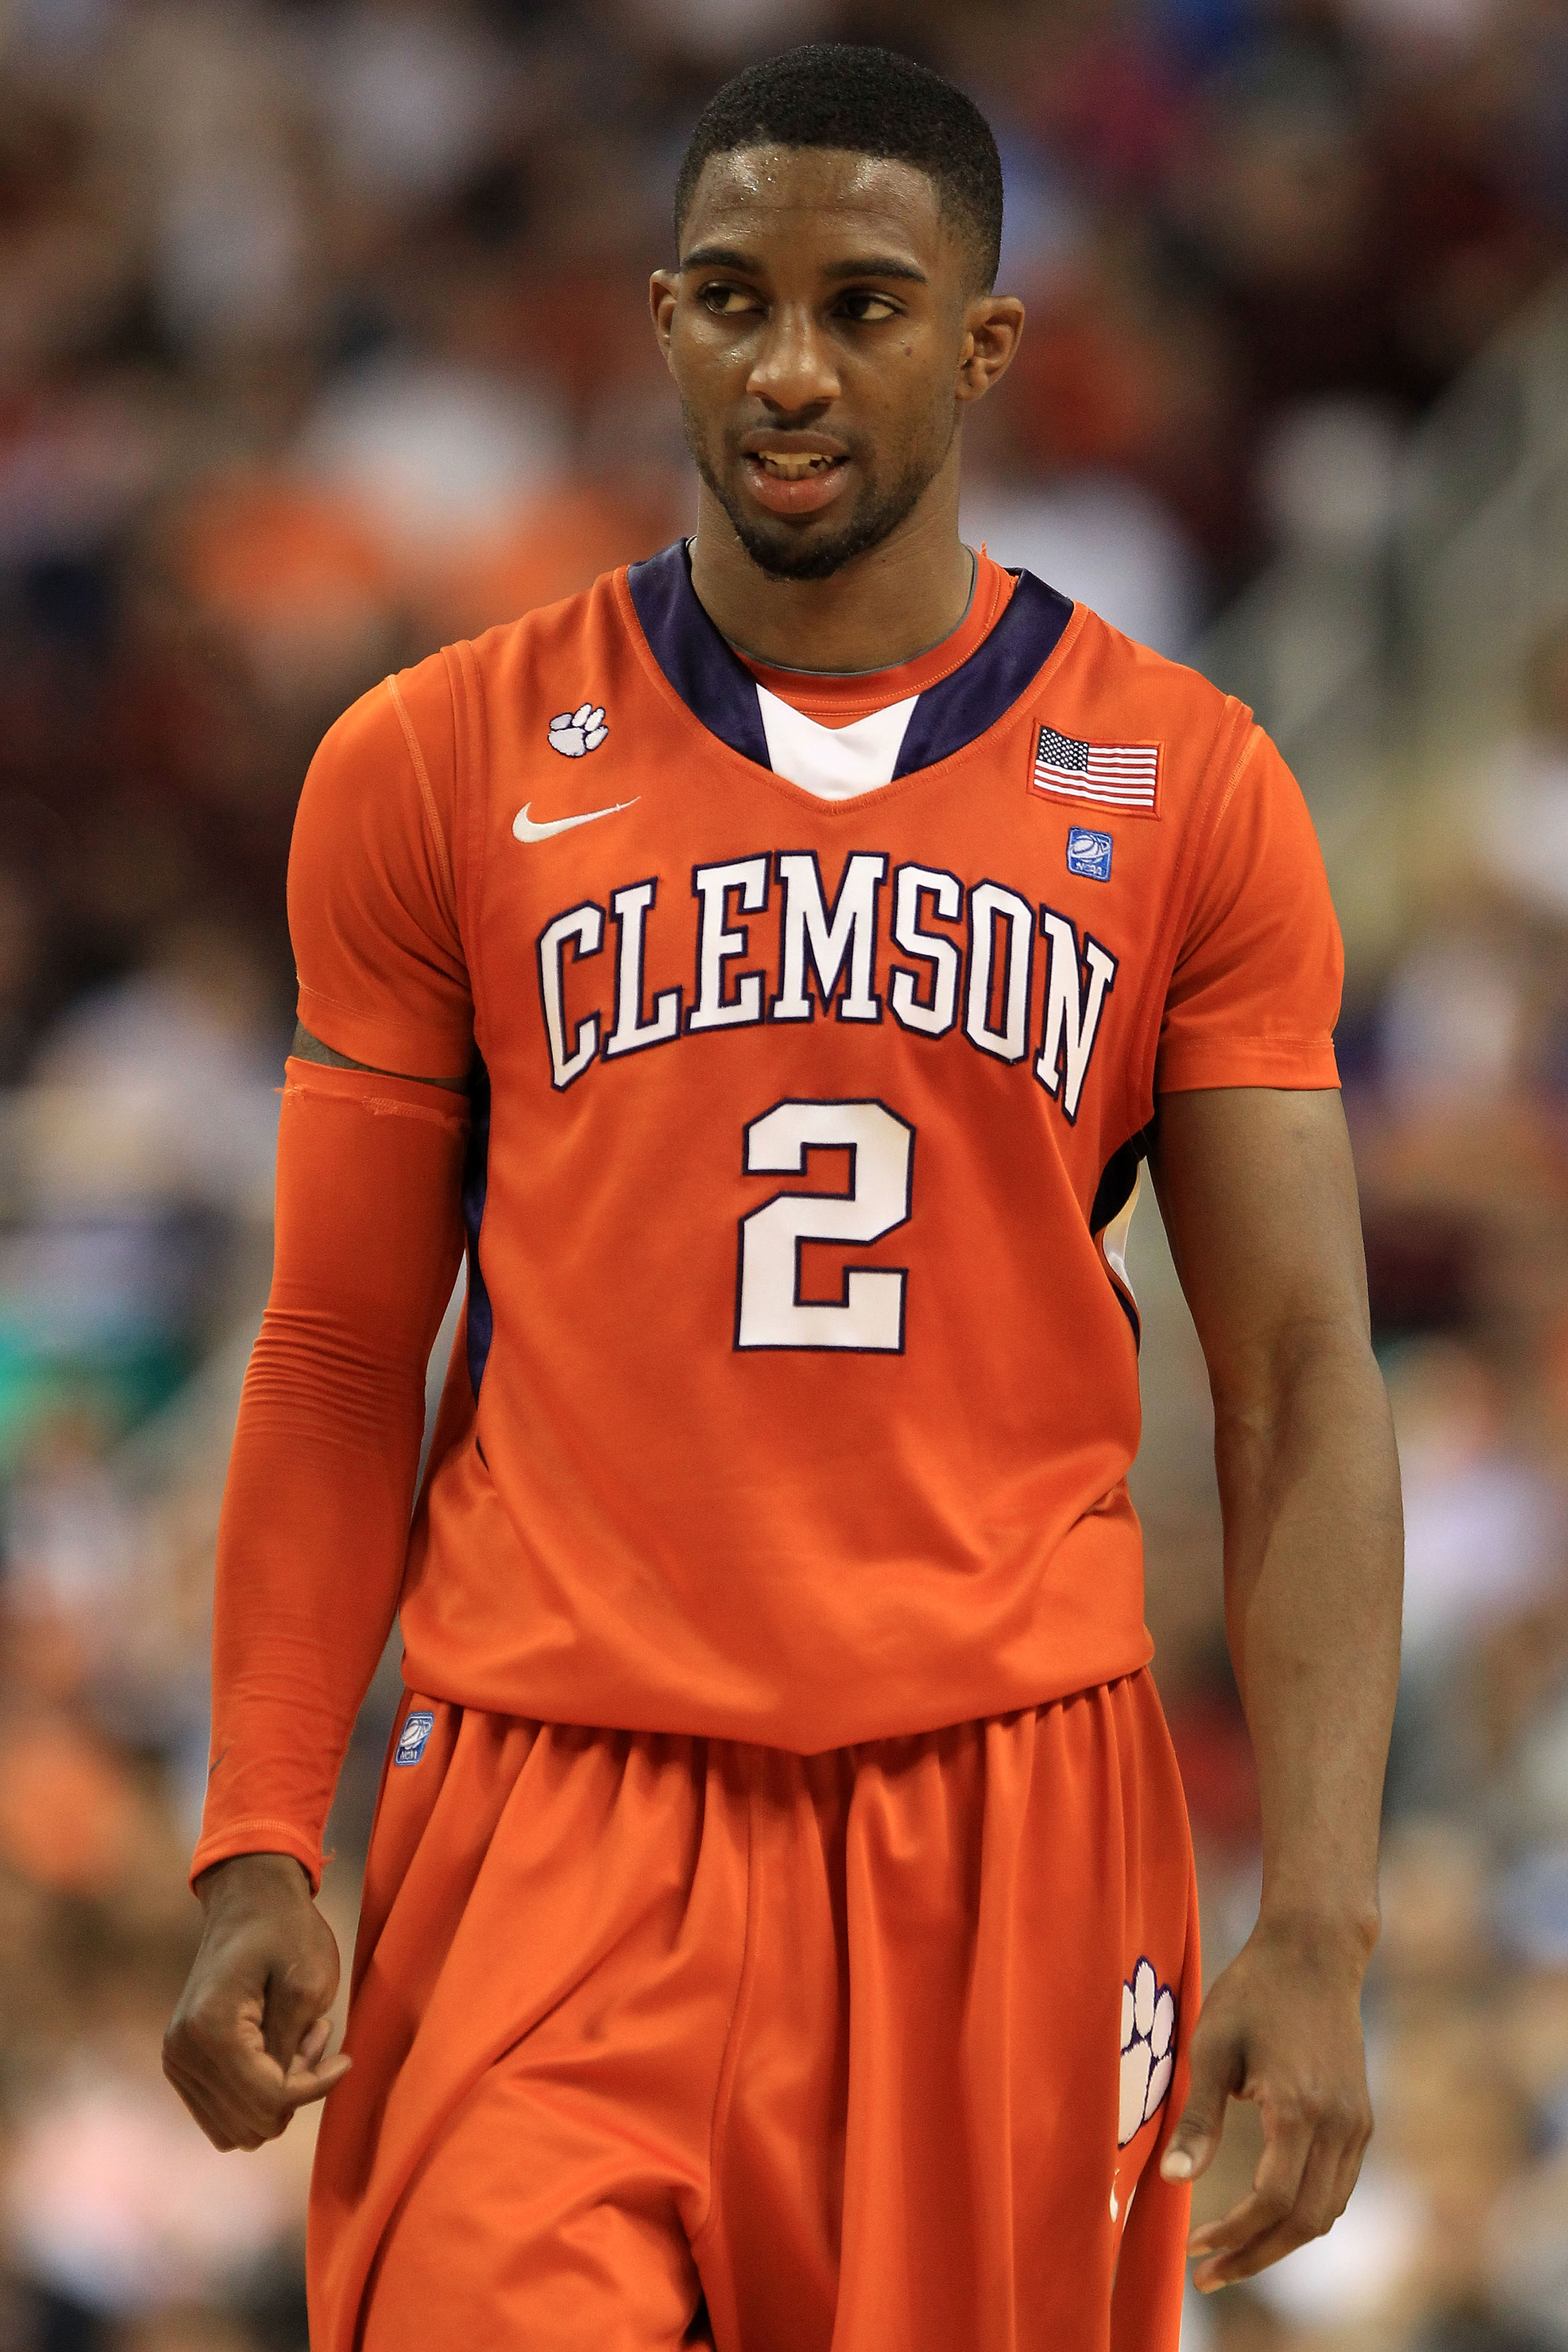 GREENSBORO, NC - MARCH 12:  Demontez Stitt #2 of the Clemson Tigers reacts while playing the North Carolina Tar Heels during overtime in the semifinals of the 2011 ACC men's basketball tournament at the Greensboro Coliseum on March 12, 2011 in Greensboro,